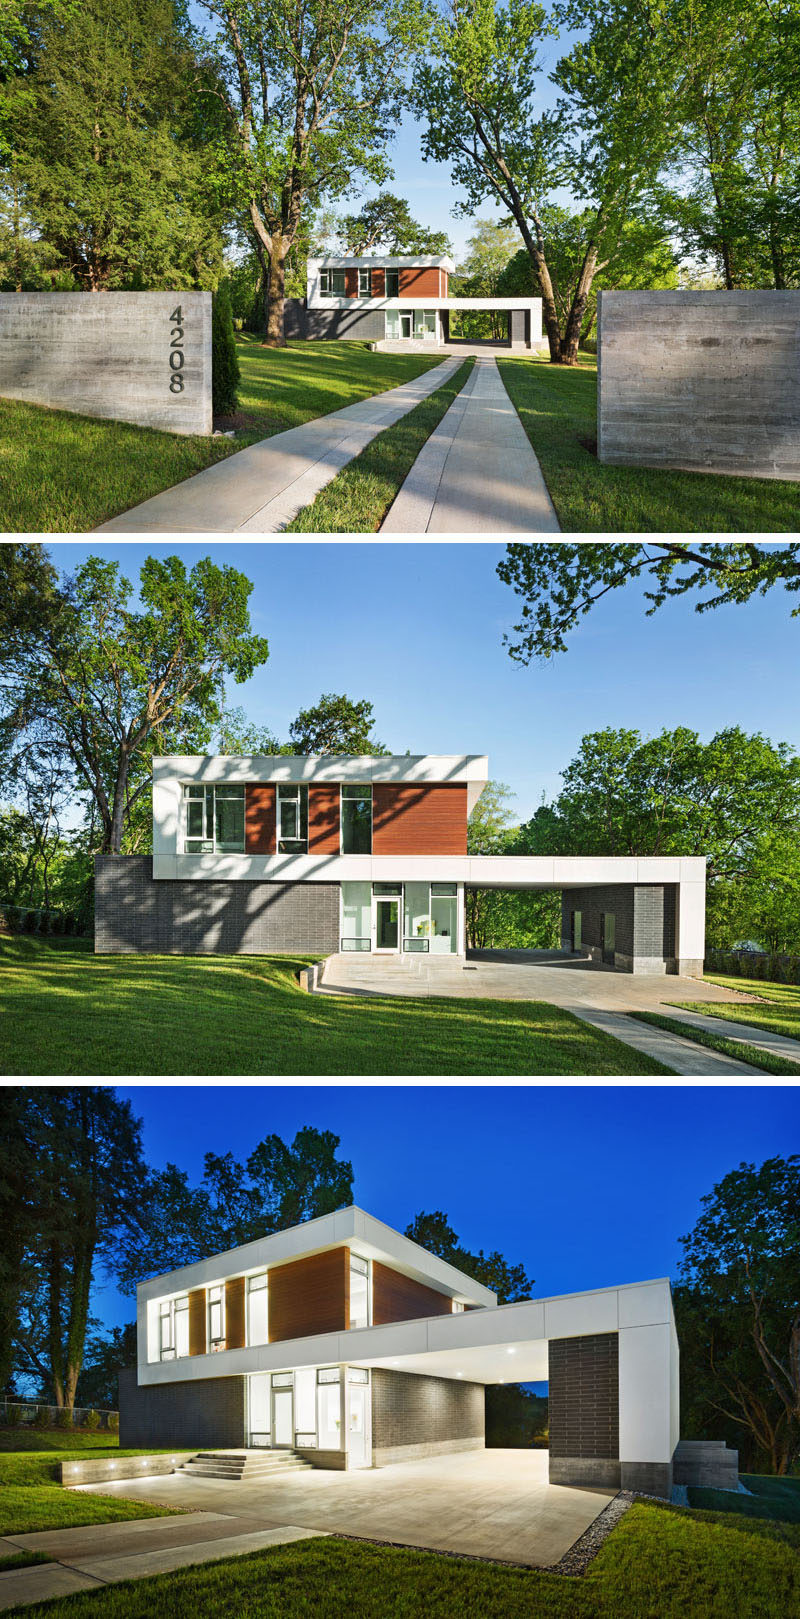 Architecture firm BARBERMcMURRY have recently completed a new house in Knoxville, Tennessee, for a young couple, their son and their dog.